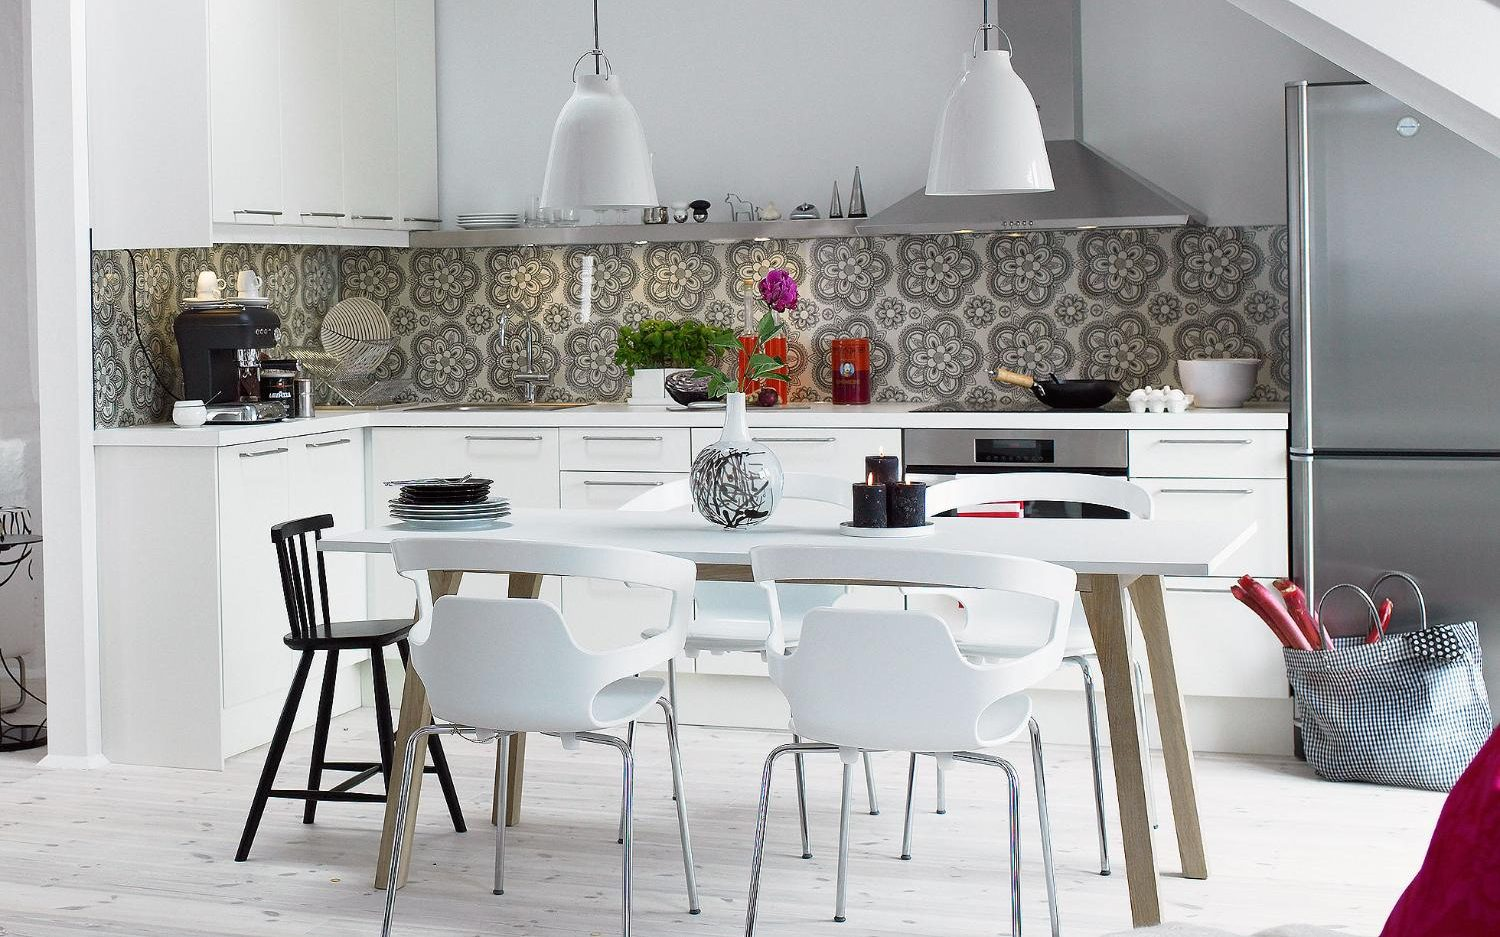 Ikea Kitchen Design Visit How To Get The Perfect Kitchen On A Budget